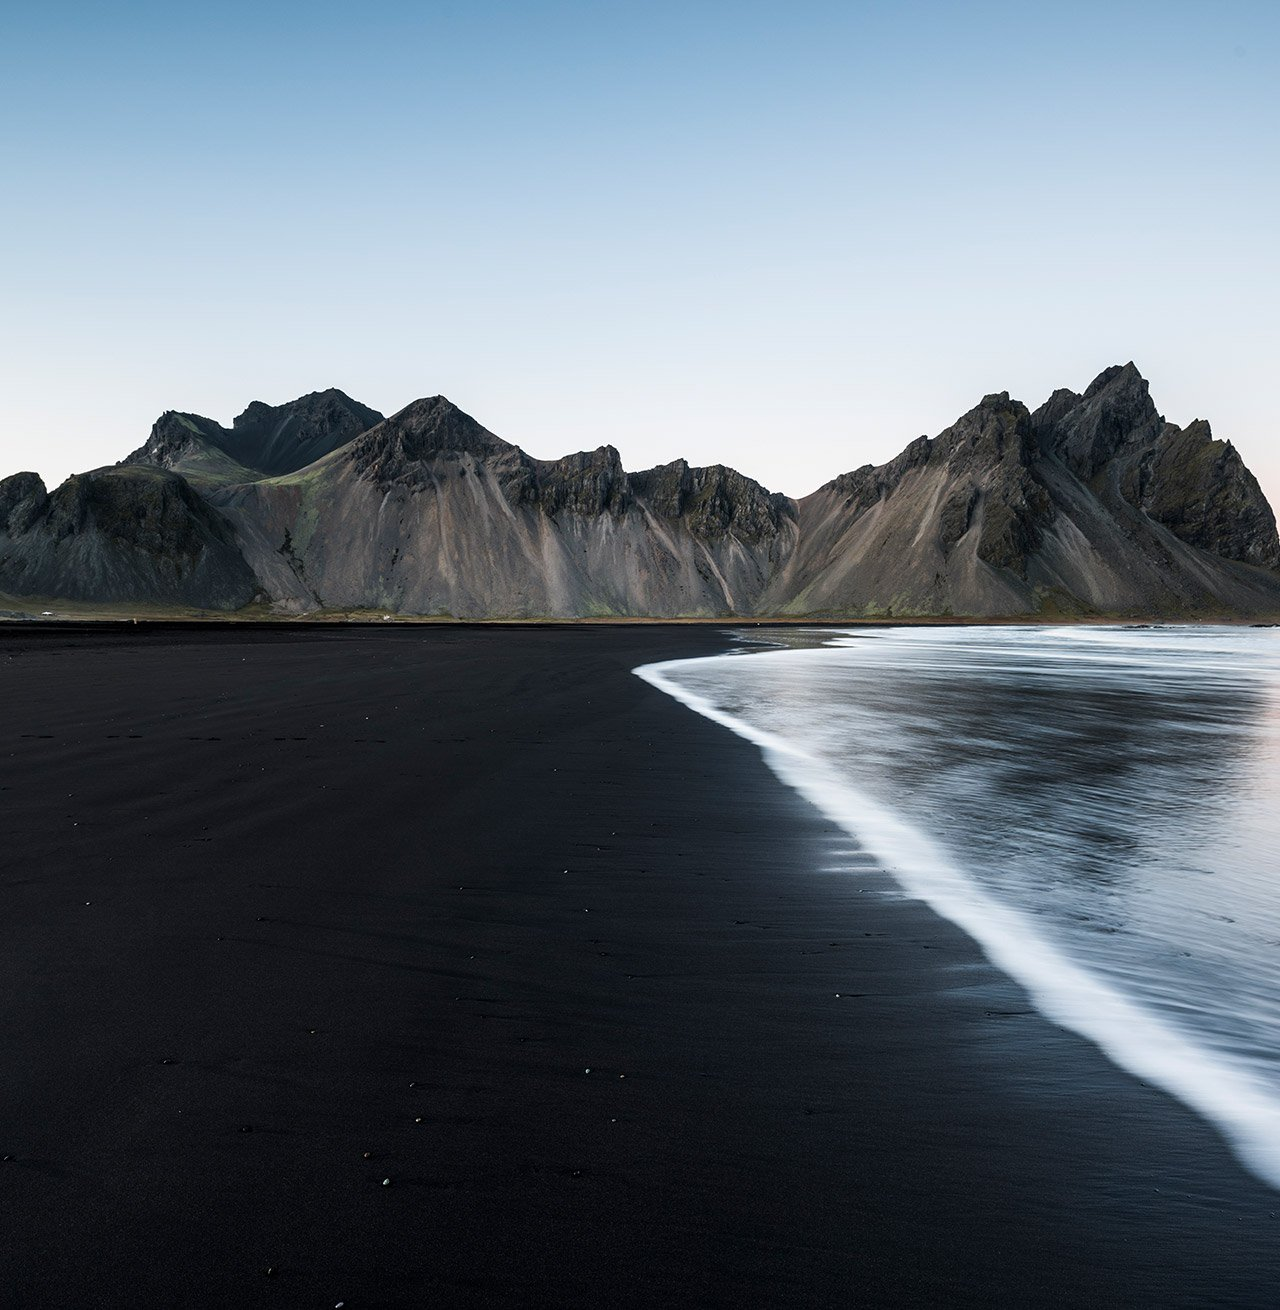 Stokksnes, Hofn, Eastern Iceland, Iceland. Vestrahorn mountain seen by the bay